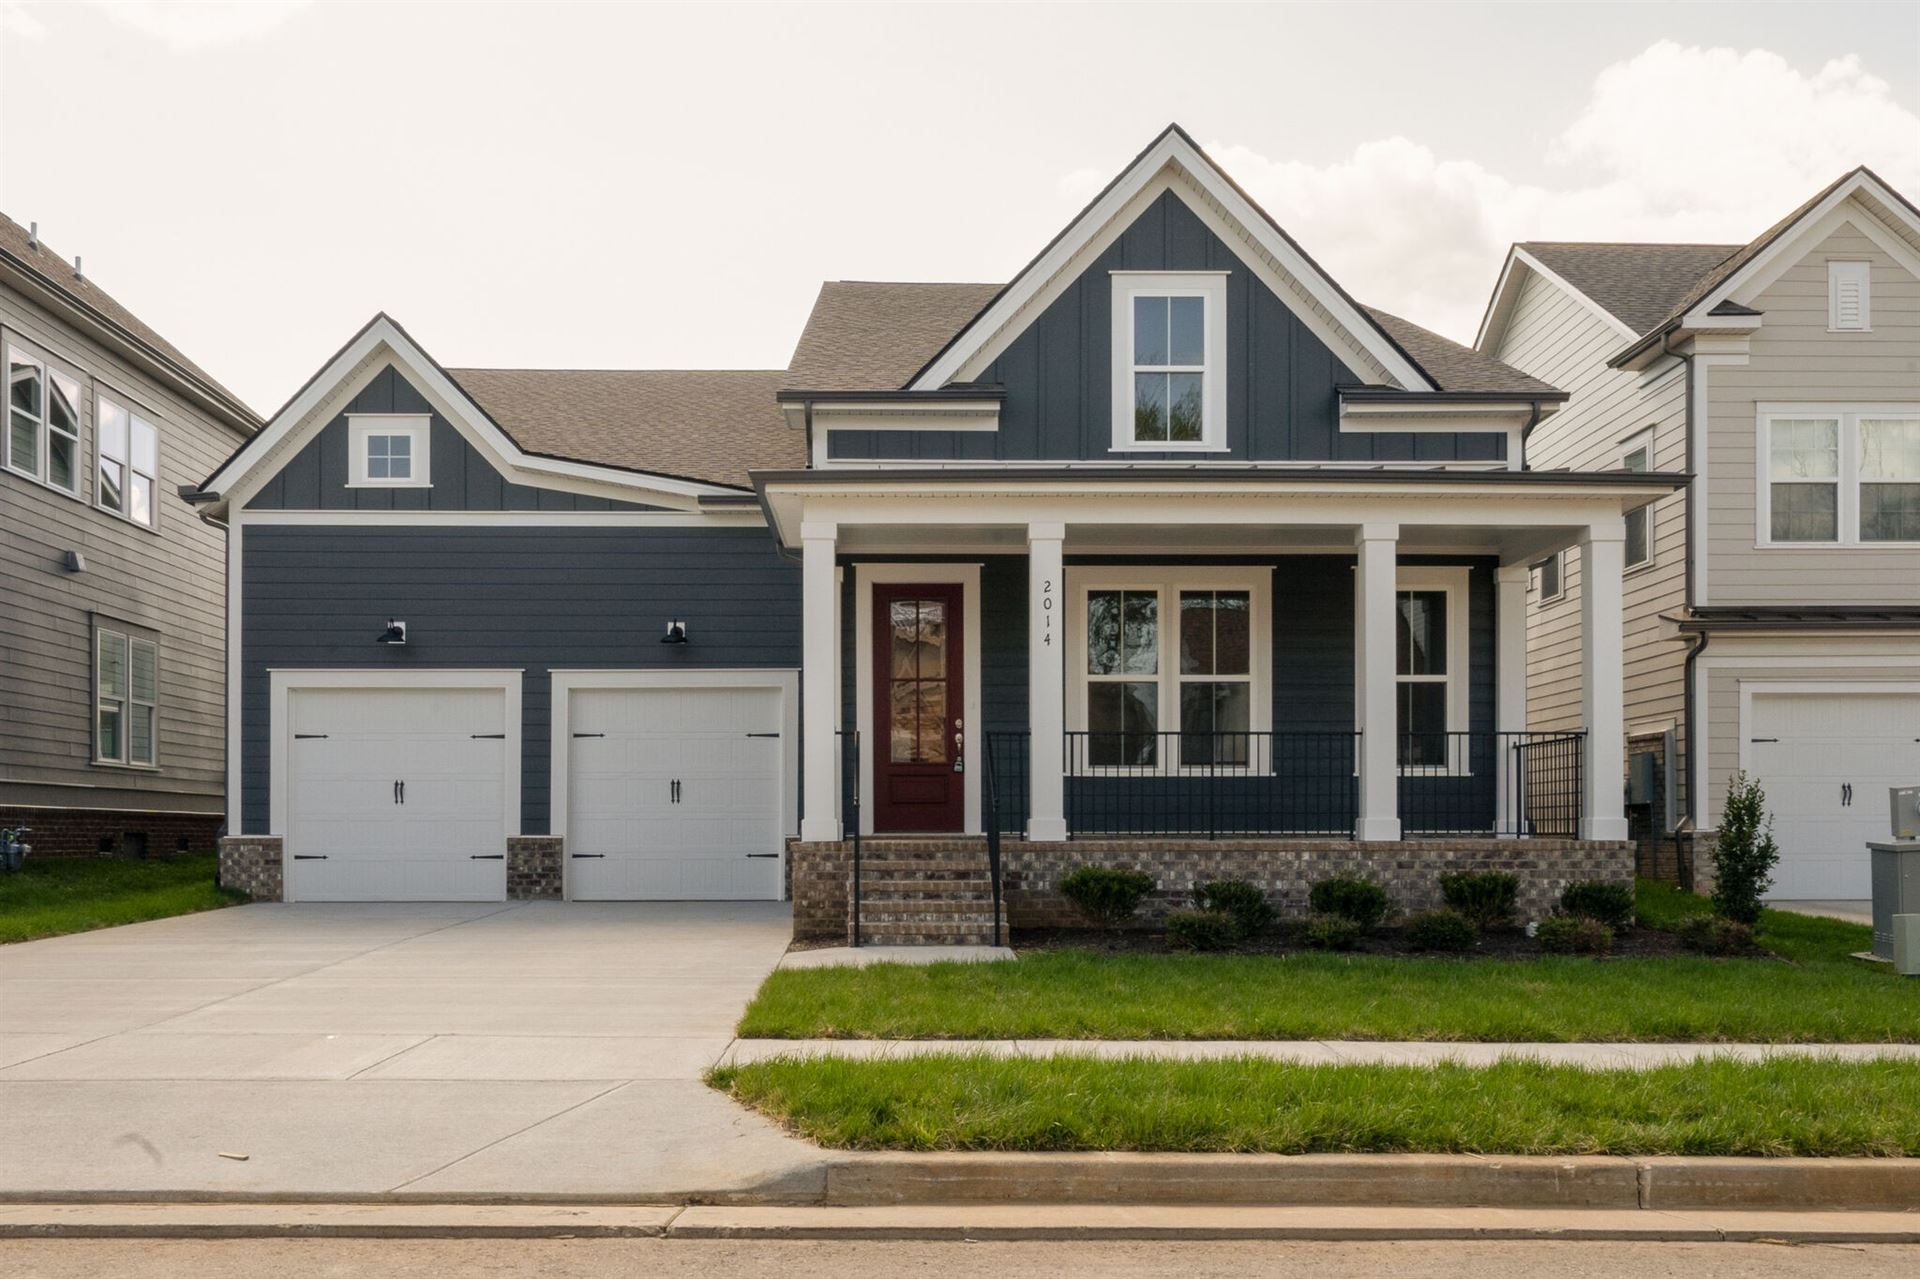 Photo of 2014 Cabell Dr, Franklin, TN 37064 (MLS # 2244348)